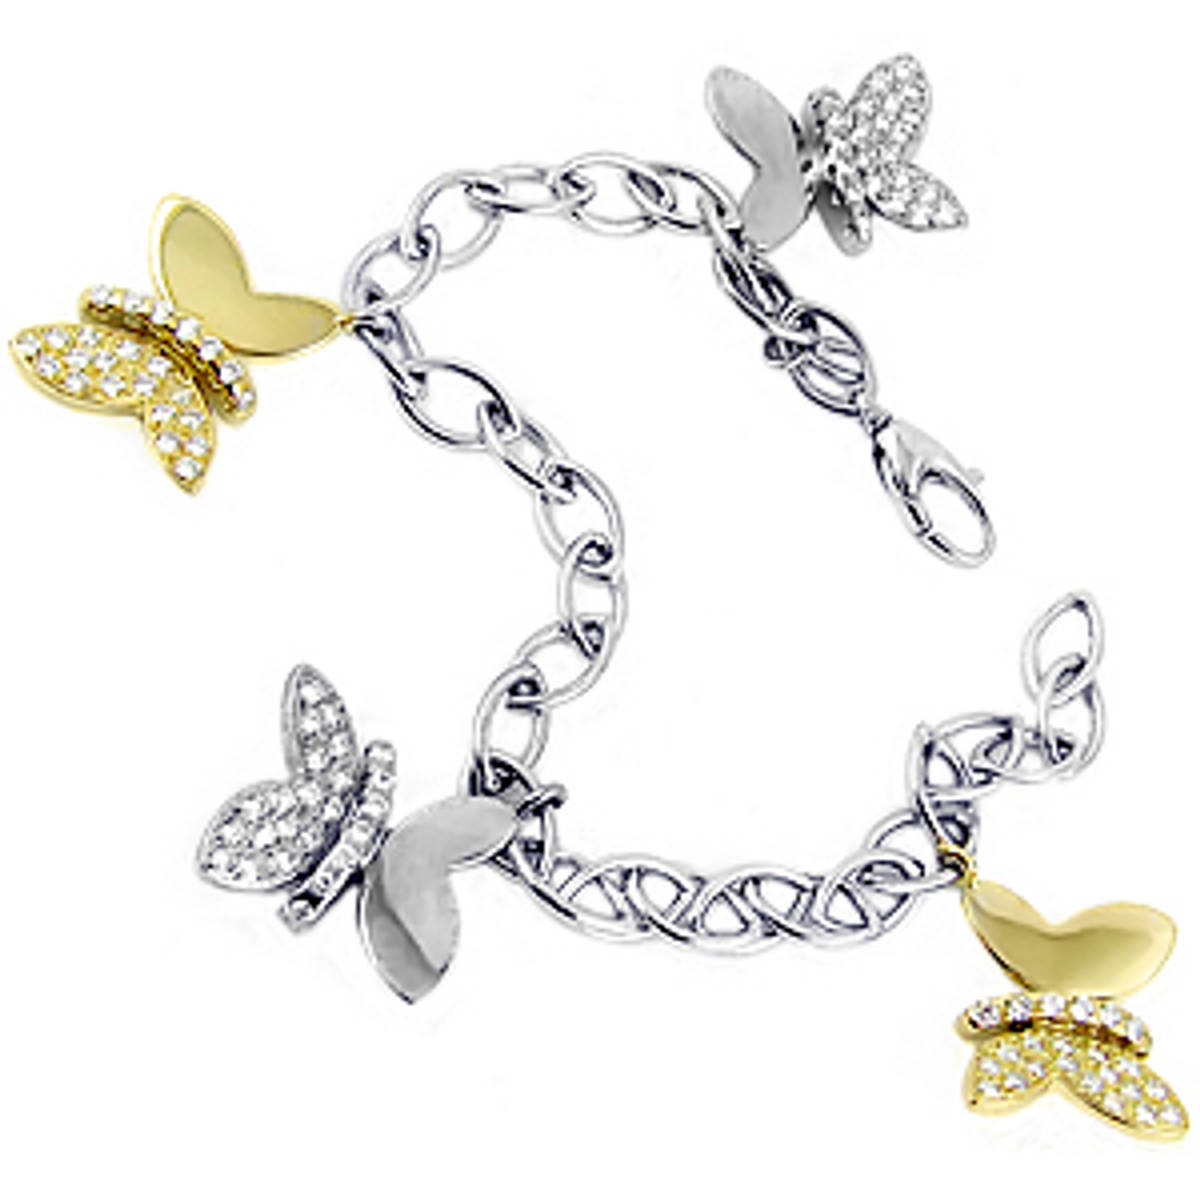 DB844Diamond butterfly braceletPictured item: 0.92ct brilliant cut diamonds set in 18k yellow and white gold